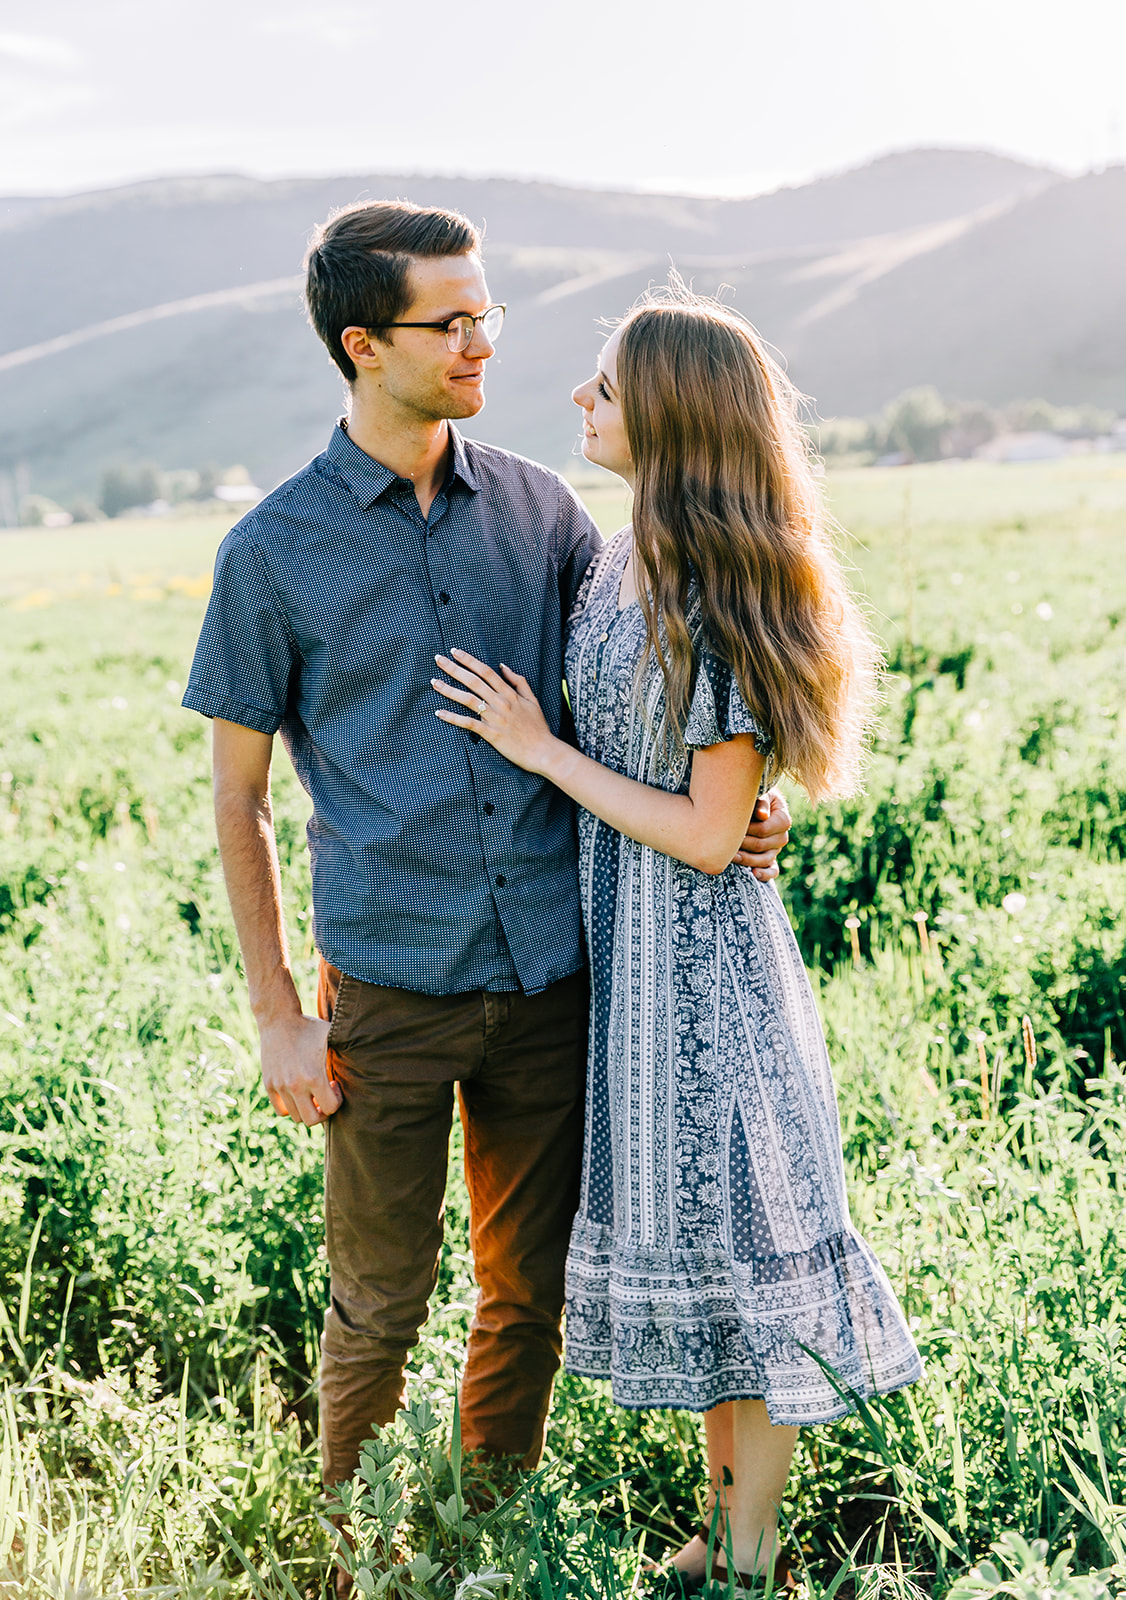 Professional engagement photographer couples session on a mountain mantua utah flower fields engagements outfit inspo by couples photographer bella alder photography #bellaalderphoto #engagements #ldscouple #mountainengagements #savethedatephoto #weddingplanning #utahengagementphotographer #utahengagements #mantuautah #loganutahengagementphotographer #engagementpictures #engagementoutfits #outfitinspo